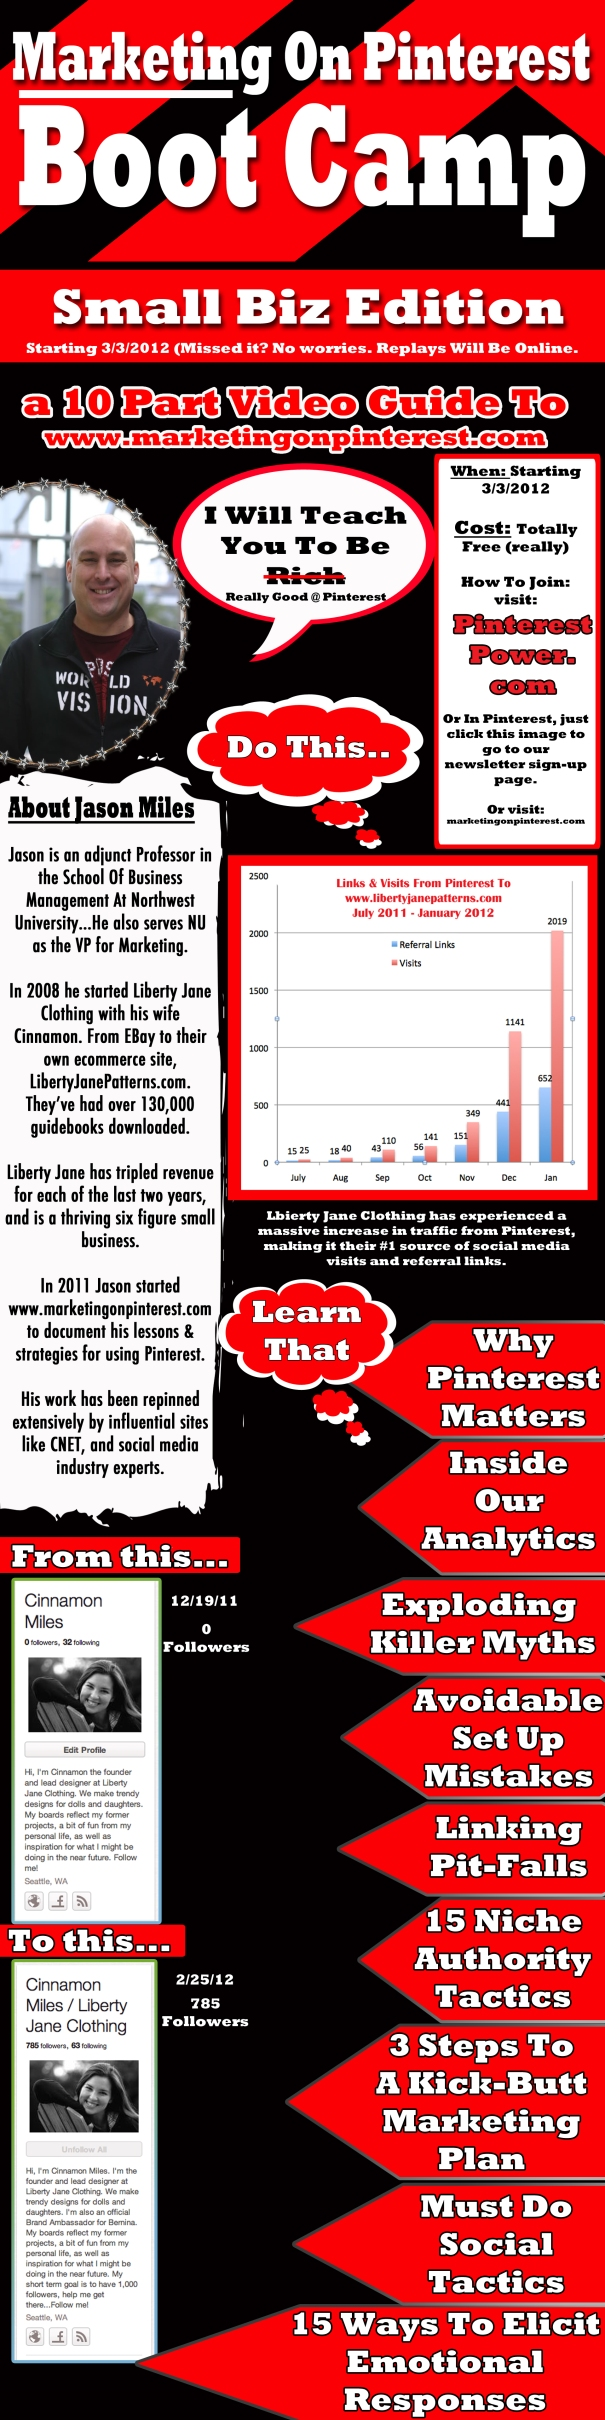 Marketing On Pinterest bootcamp flyer